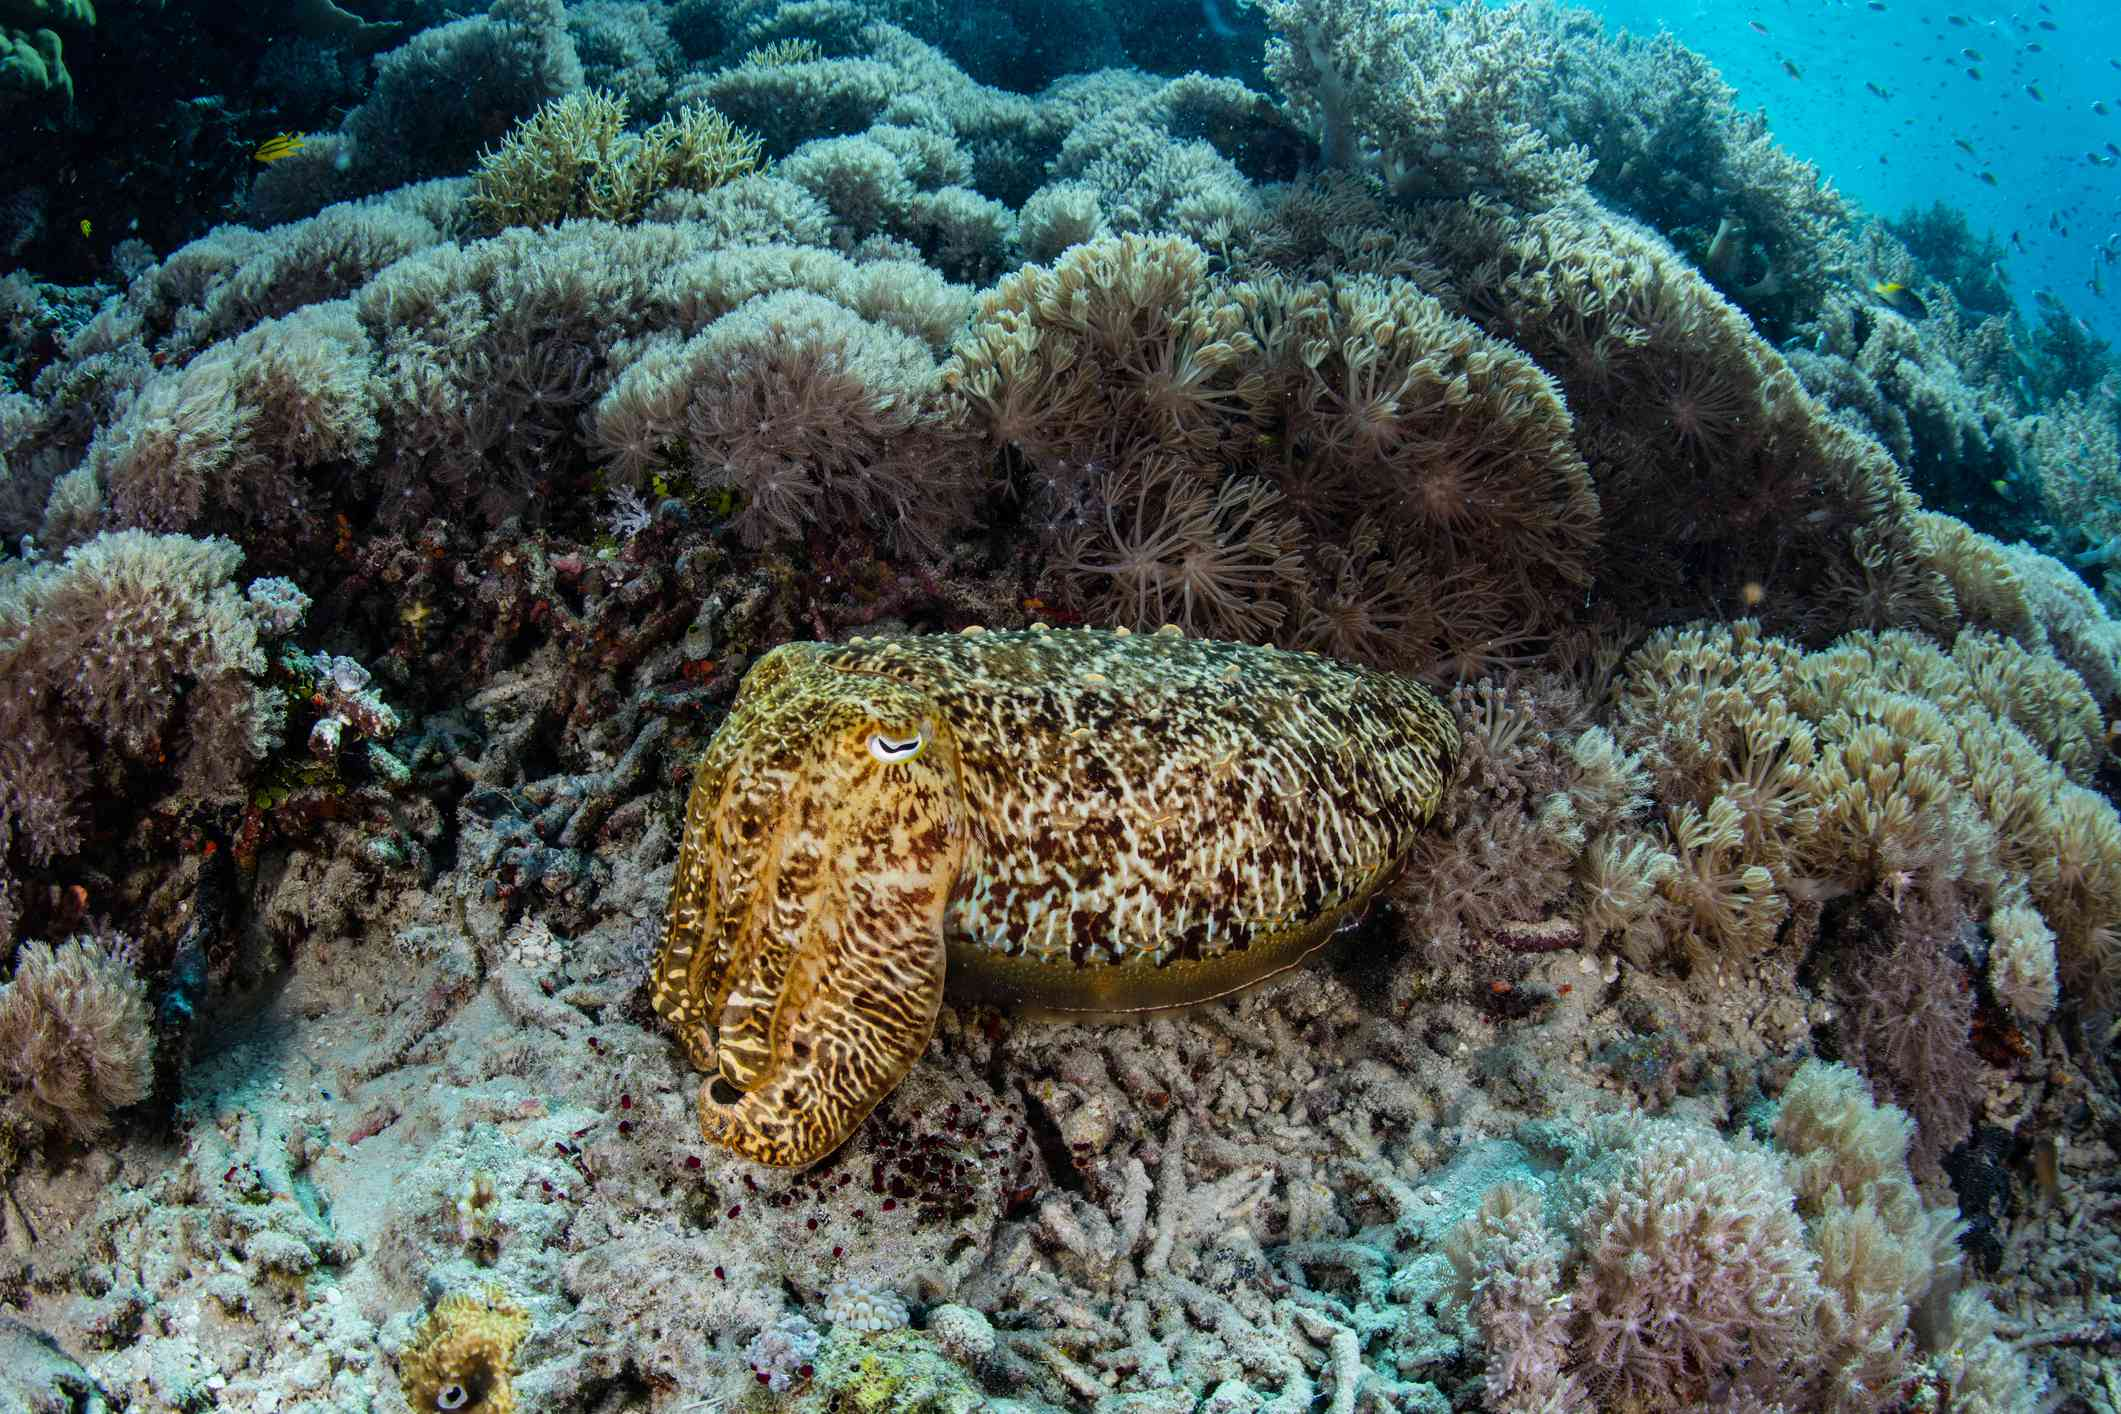 brown tan and yellow patterned cuttlefish rests on ocean floor near coral